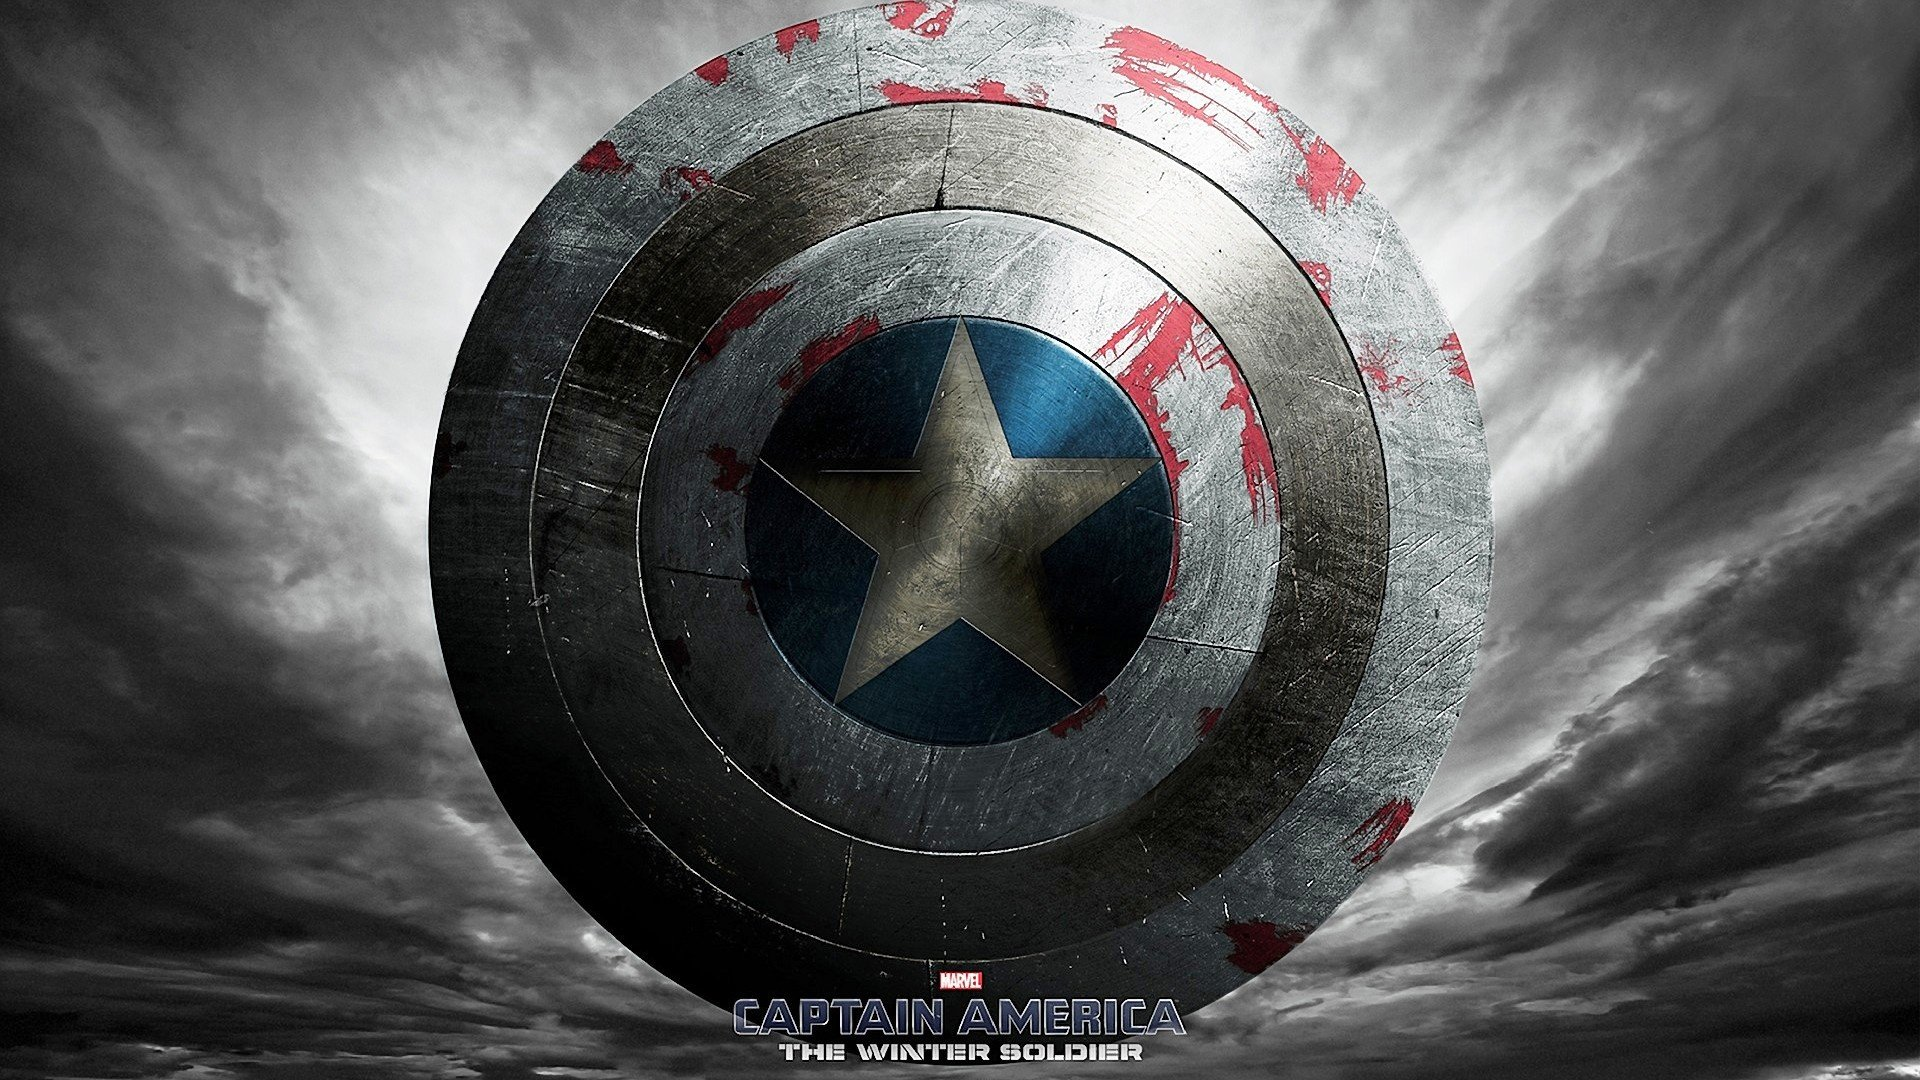 Shield Captain America The Winter Soldier Wallpapers   1920x1080 1920x1080